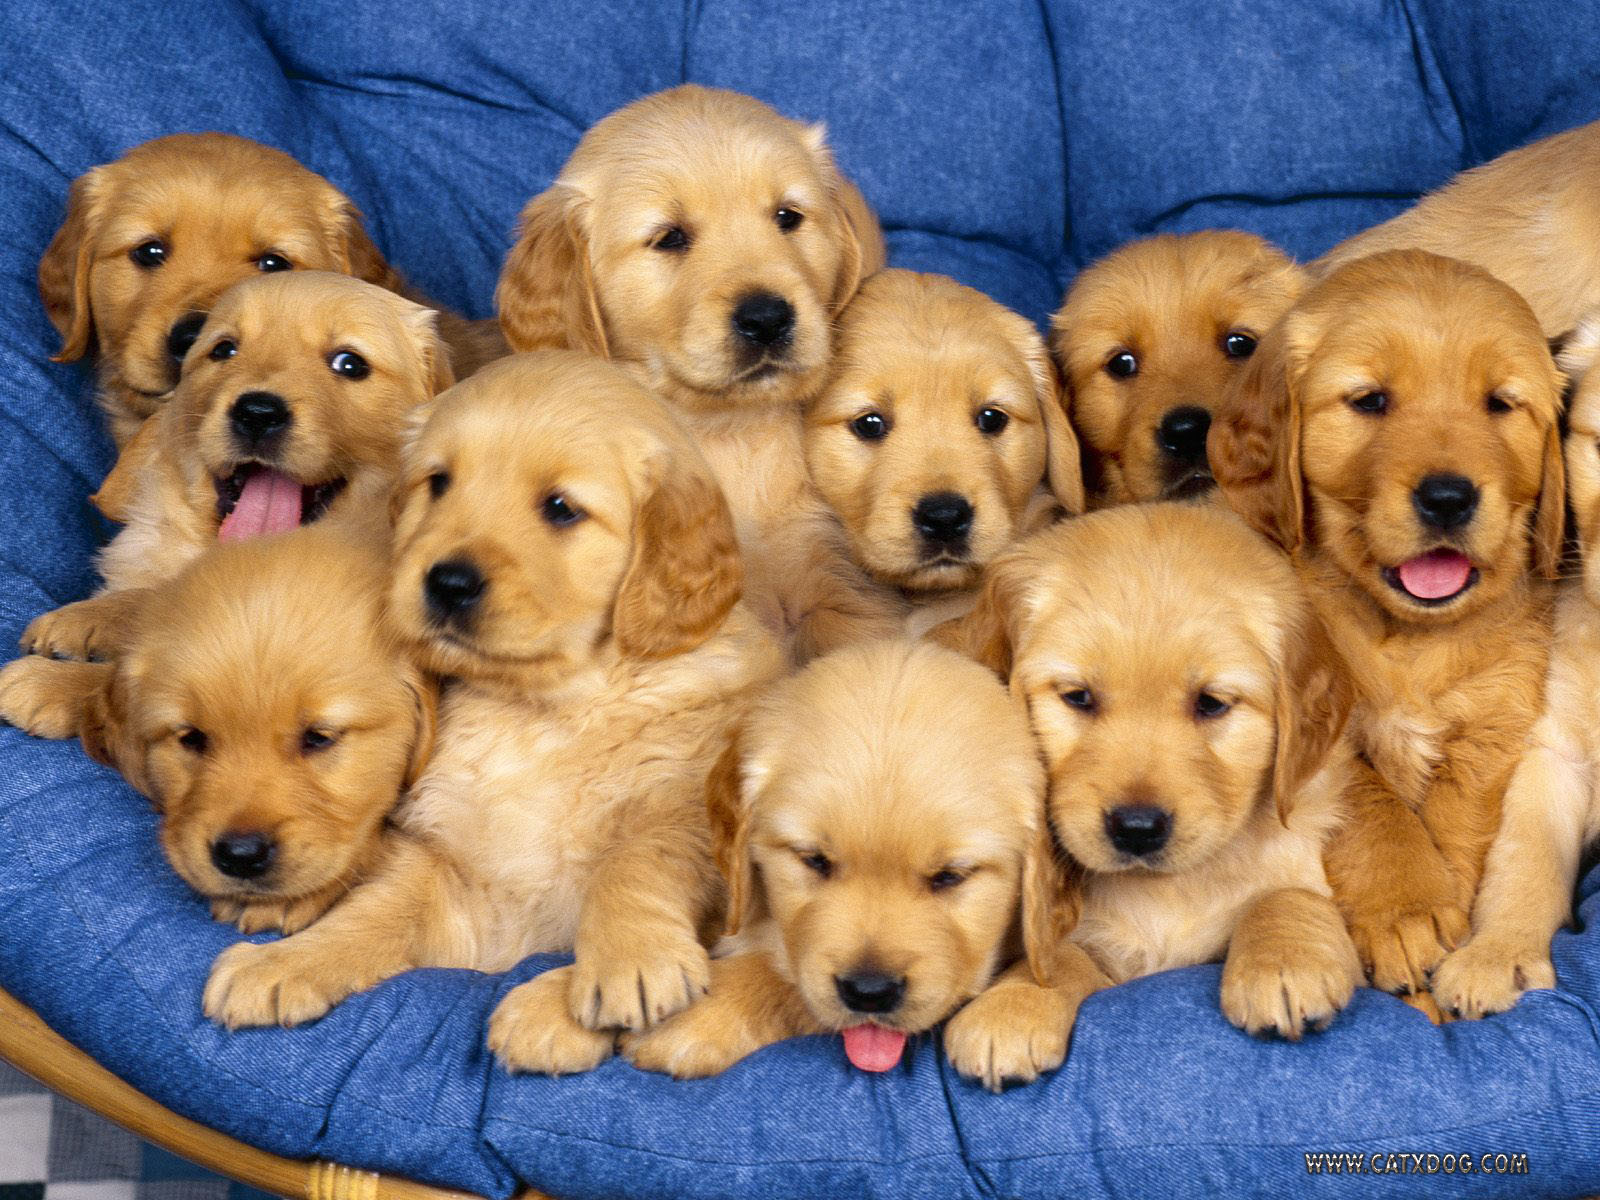 Puppies For Sale: Golden Retriever Puppies For Sale